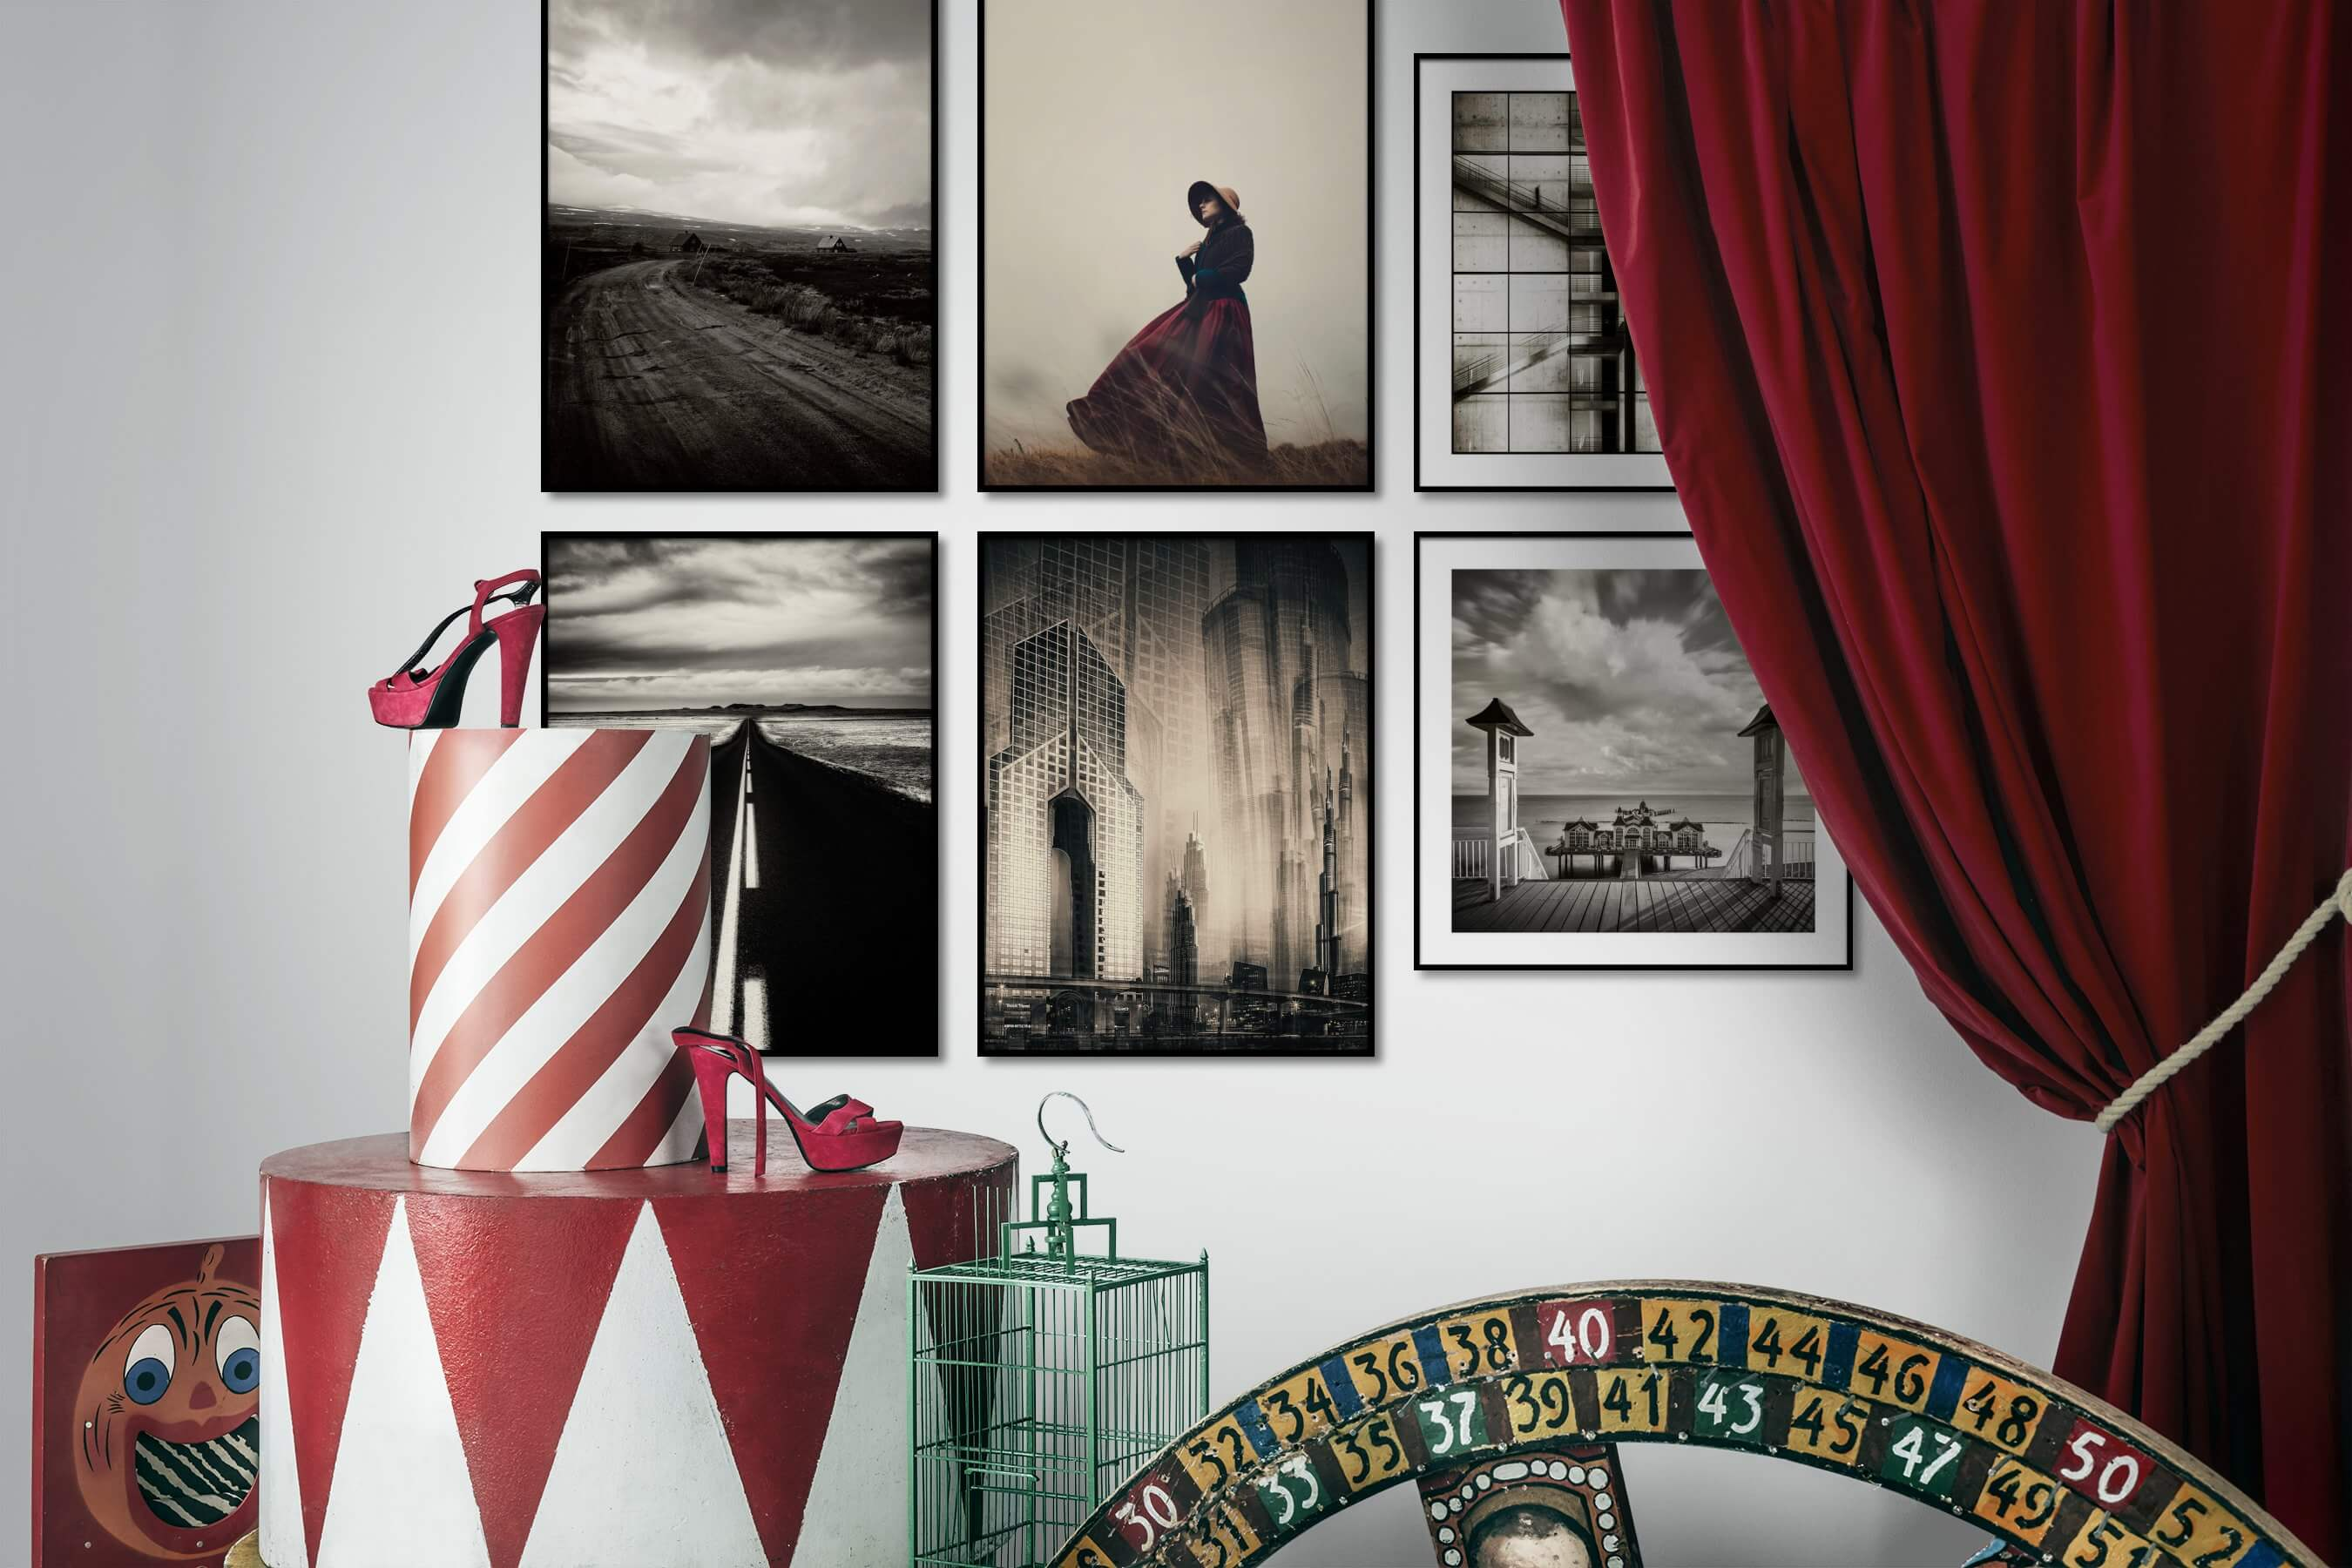 Gallery wall idea with six framed pictures arranged on a wall depicting Black & White, Country Life, Fashion & Beauty, For the Minimalist, Vintage, Mindfulness, For the Maximalist, City Life, and Beach & Water